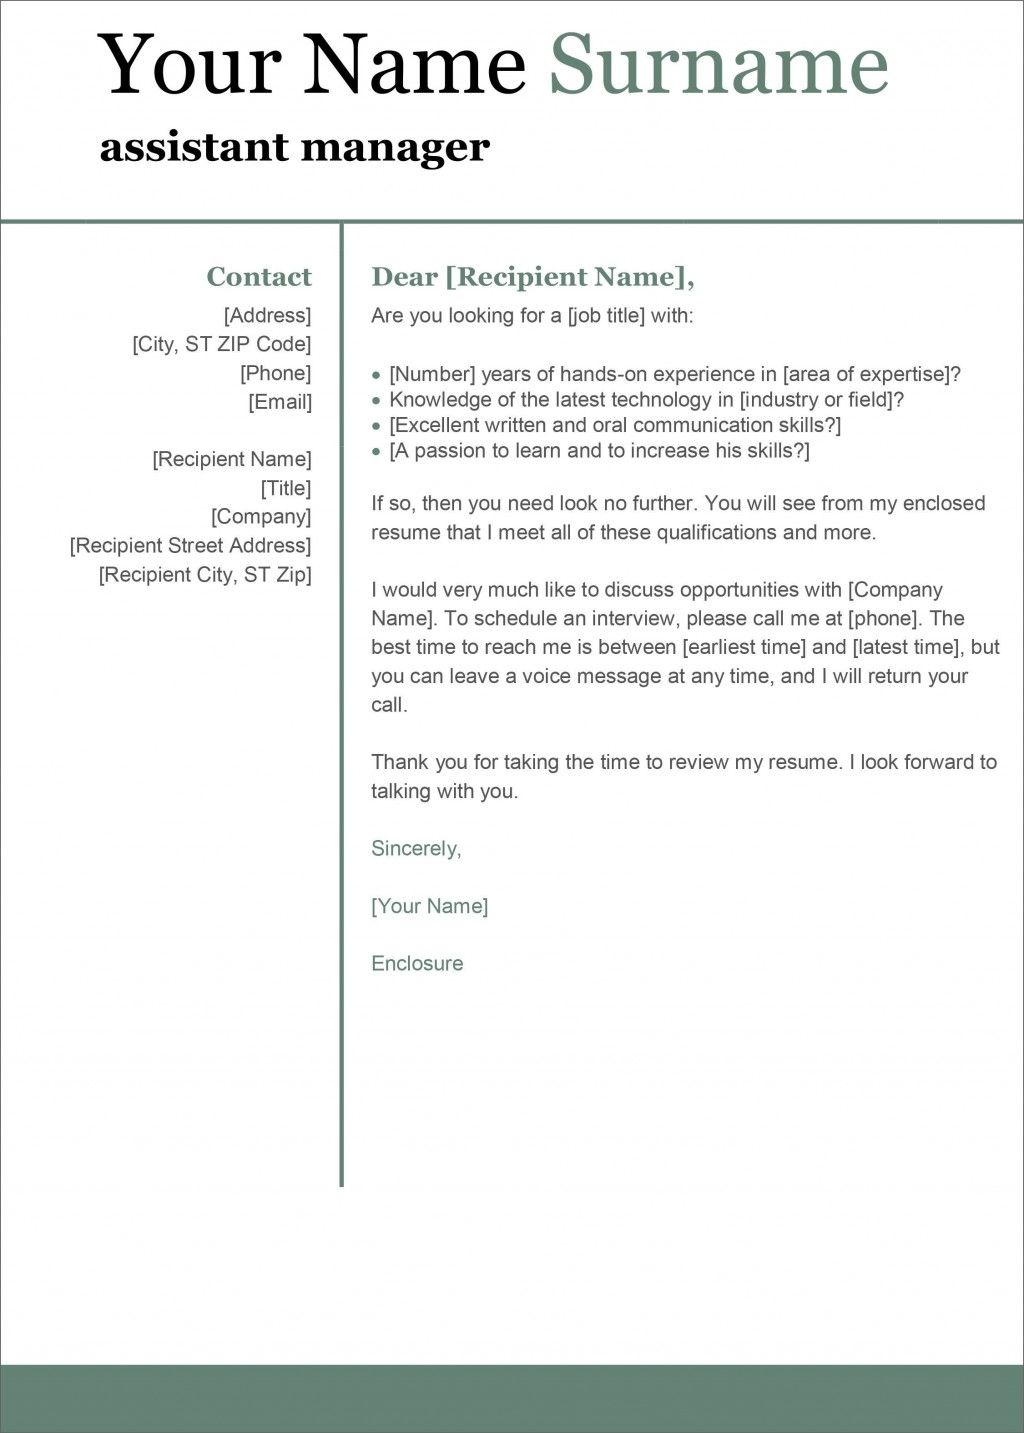 002 Fascinating Free Cover Letter Template Download Highest Clarity  Word Doc ModernLarge